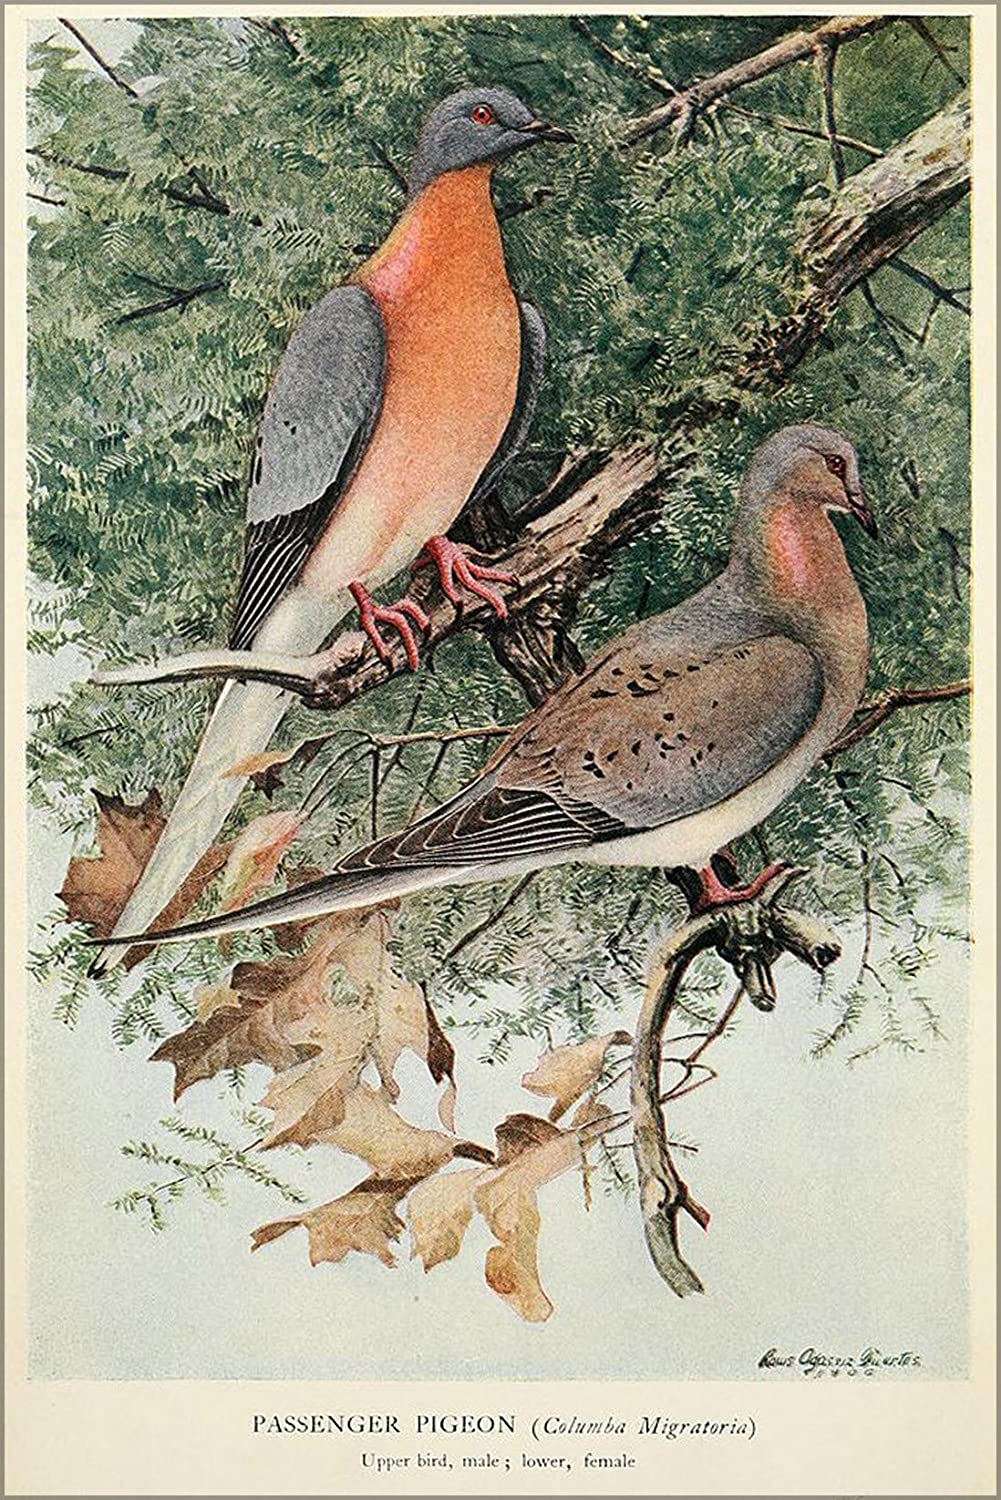 The Passenger Pigeon, 1907